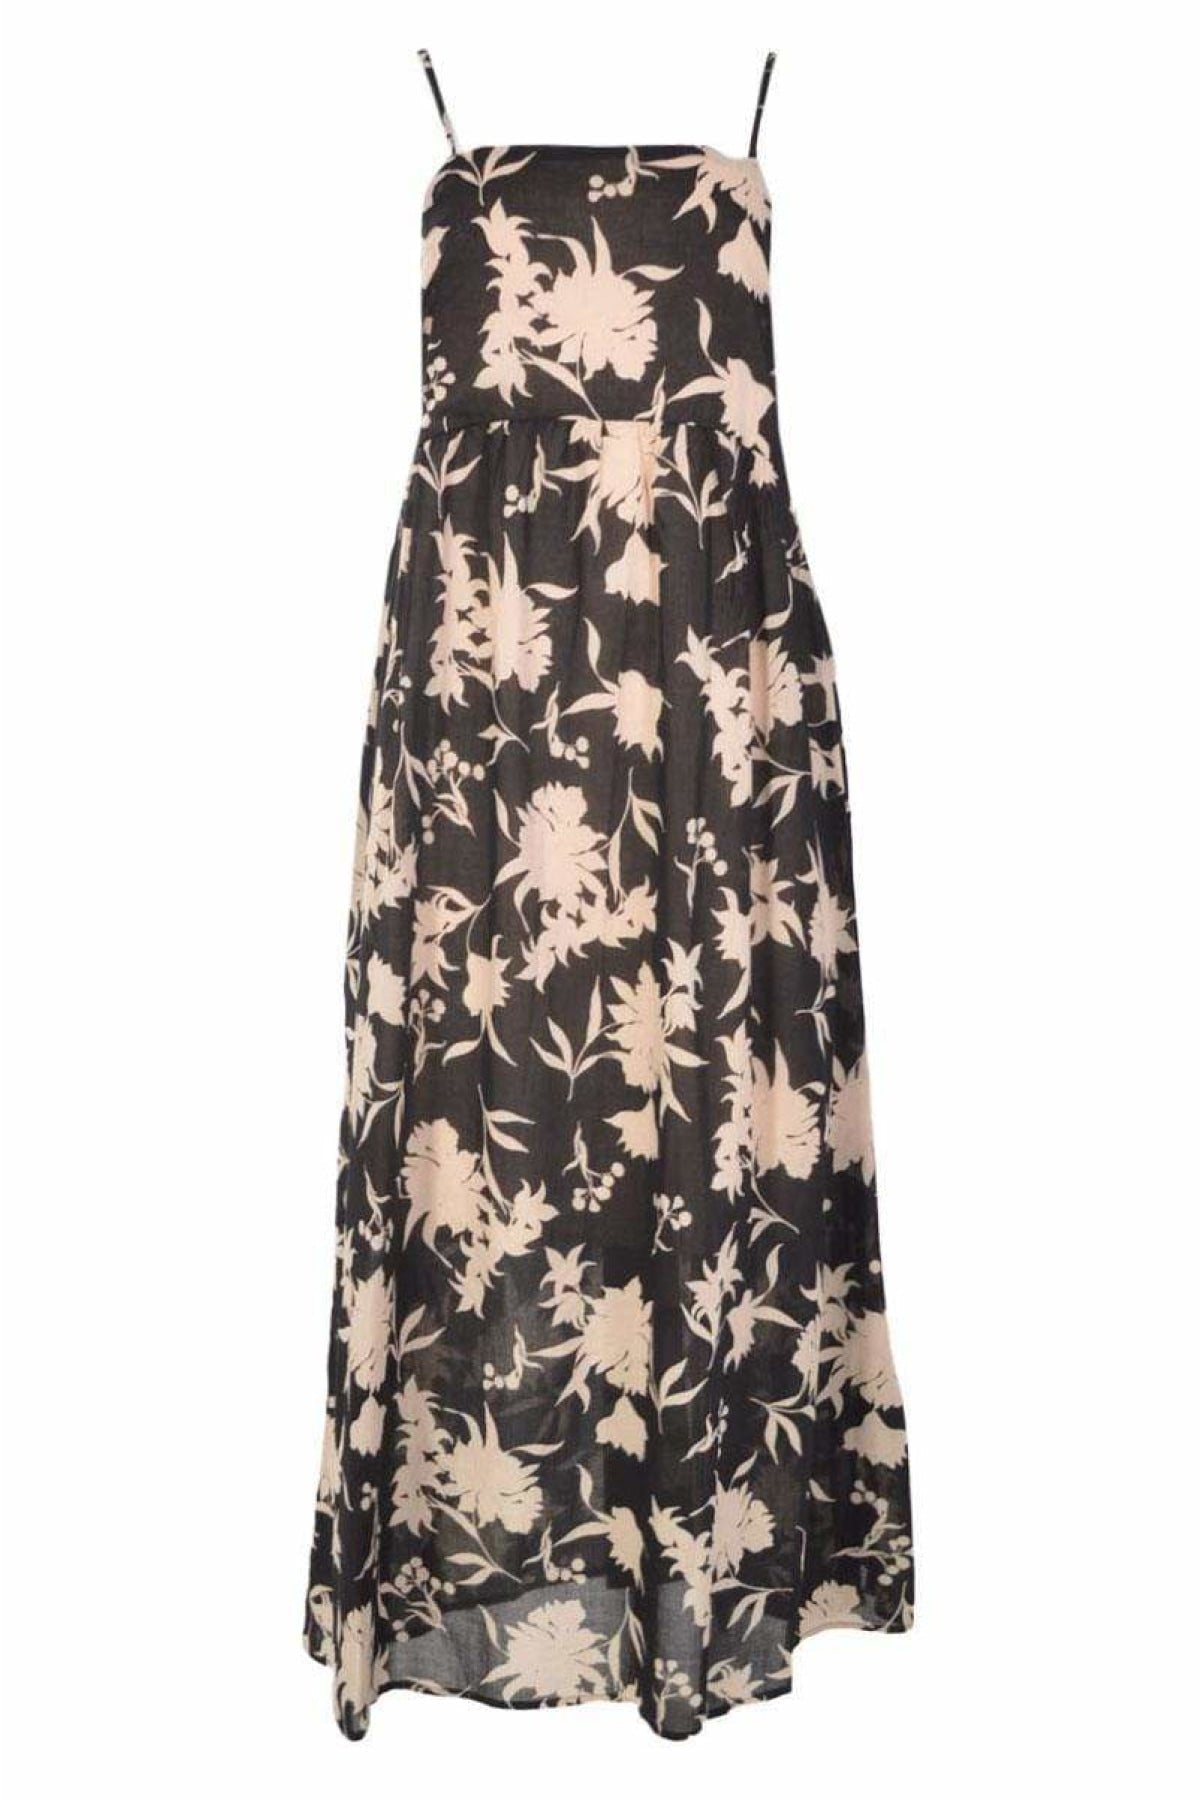 Warehouse Ex Warehouse Black Floral Print Cami Dress | Secret Label